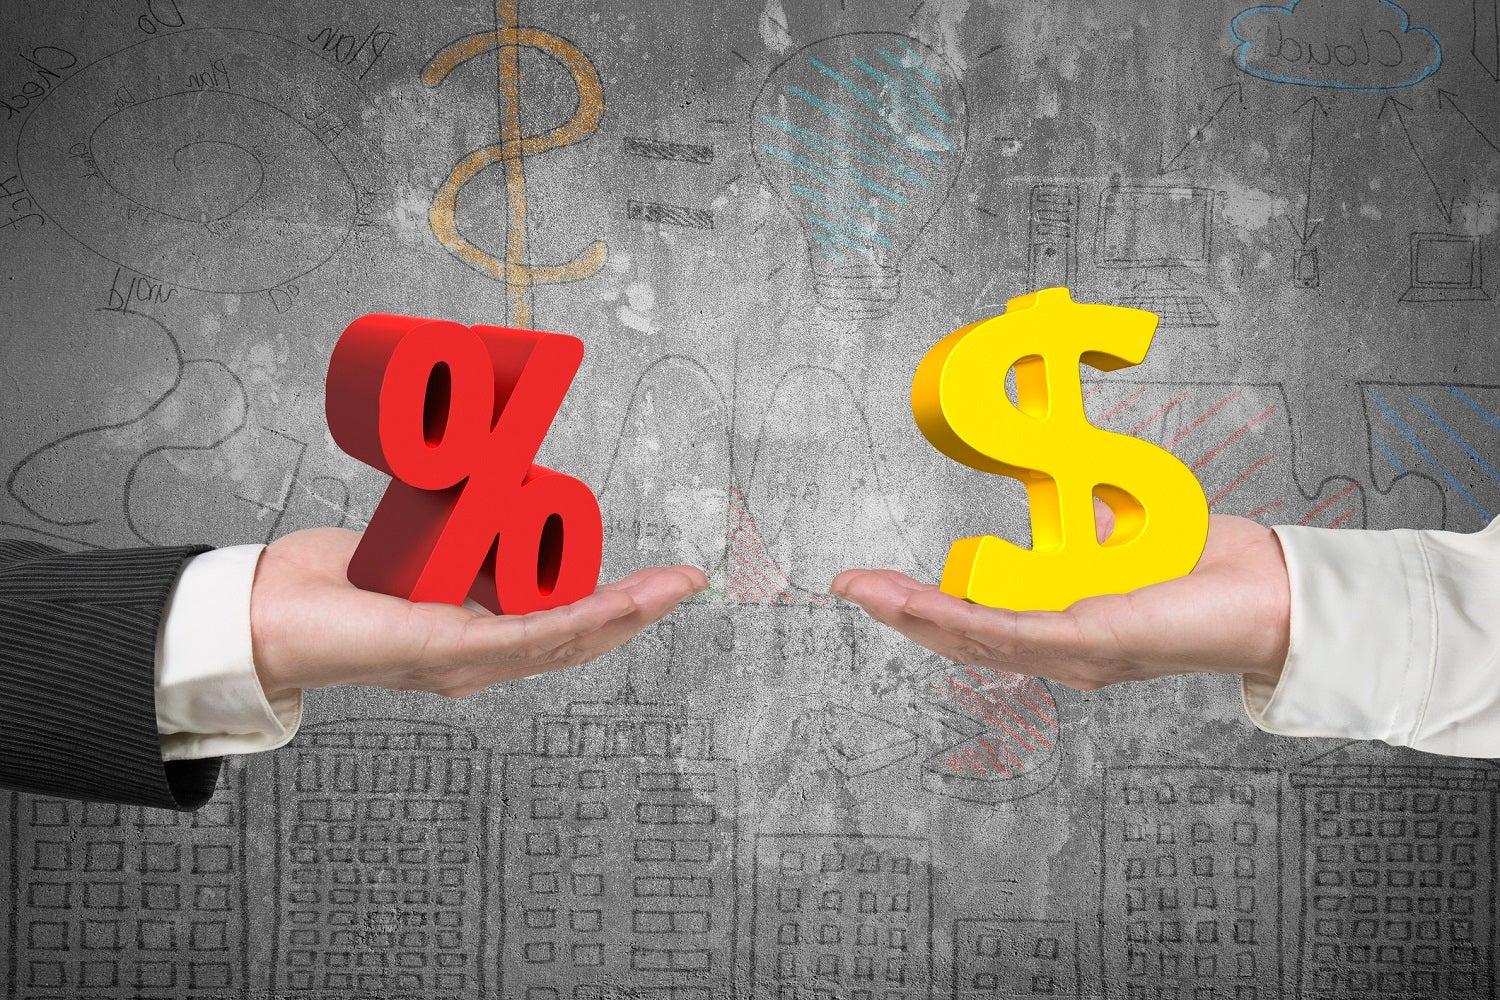 A hand on the left holds a percent sign, a hand on the right holds a dollar sign.